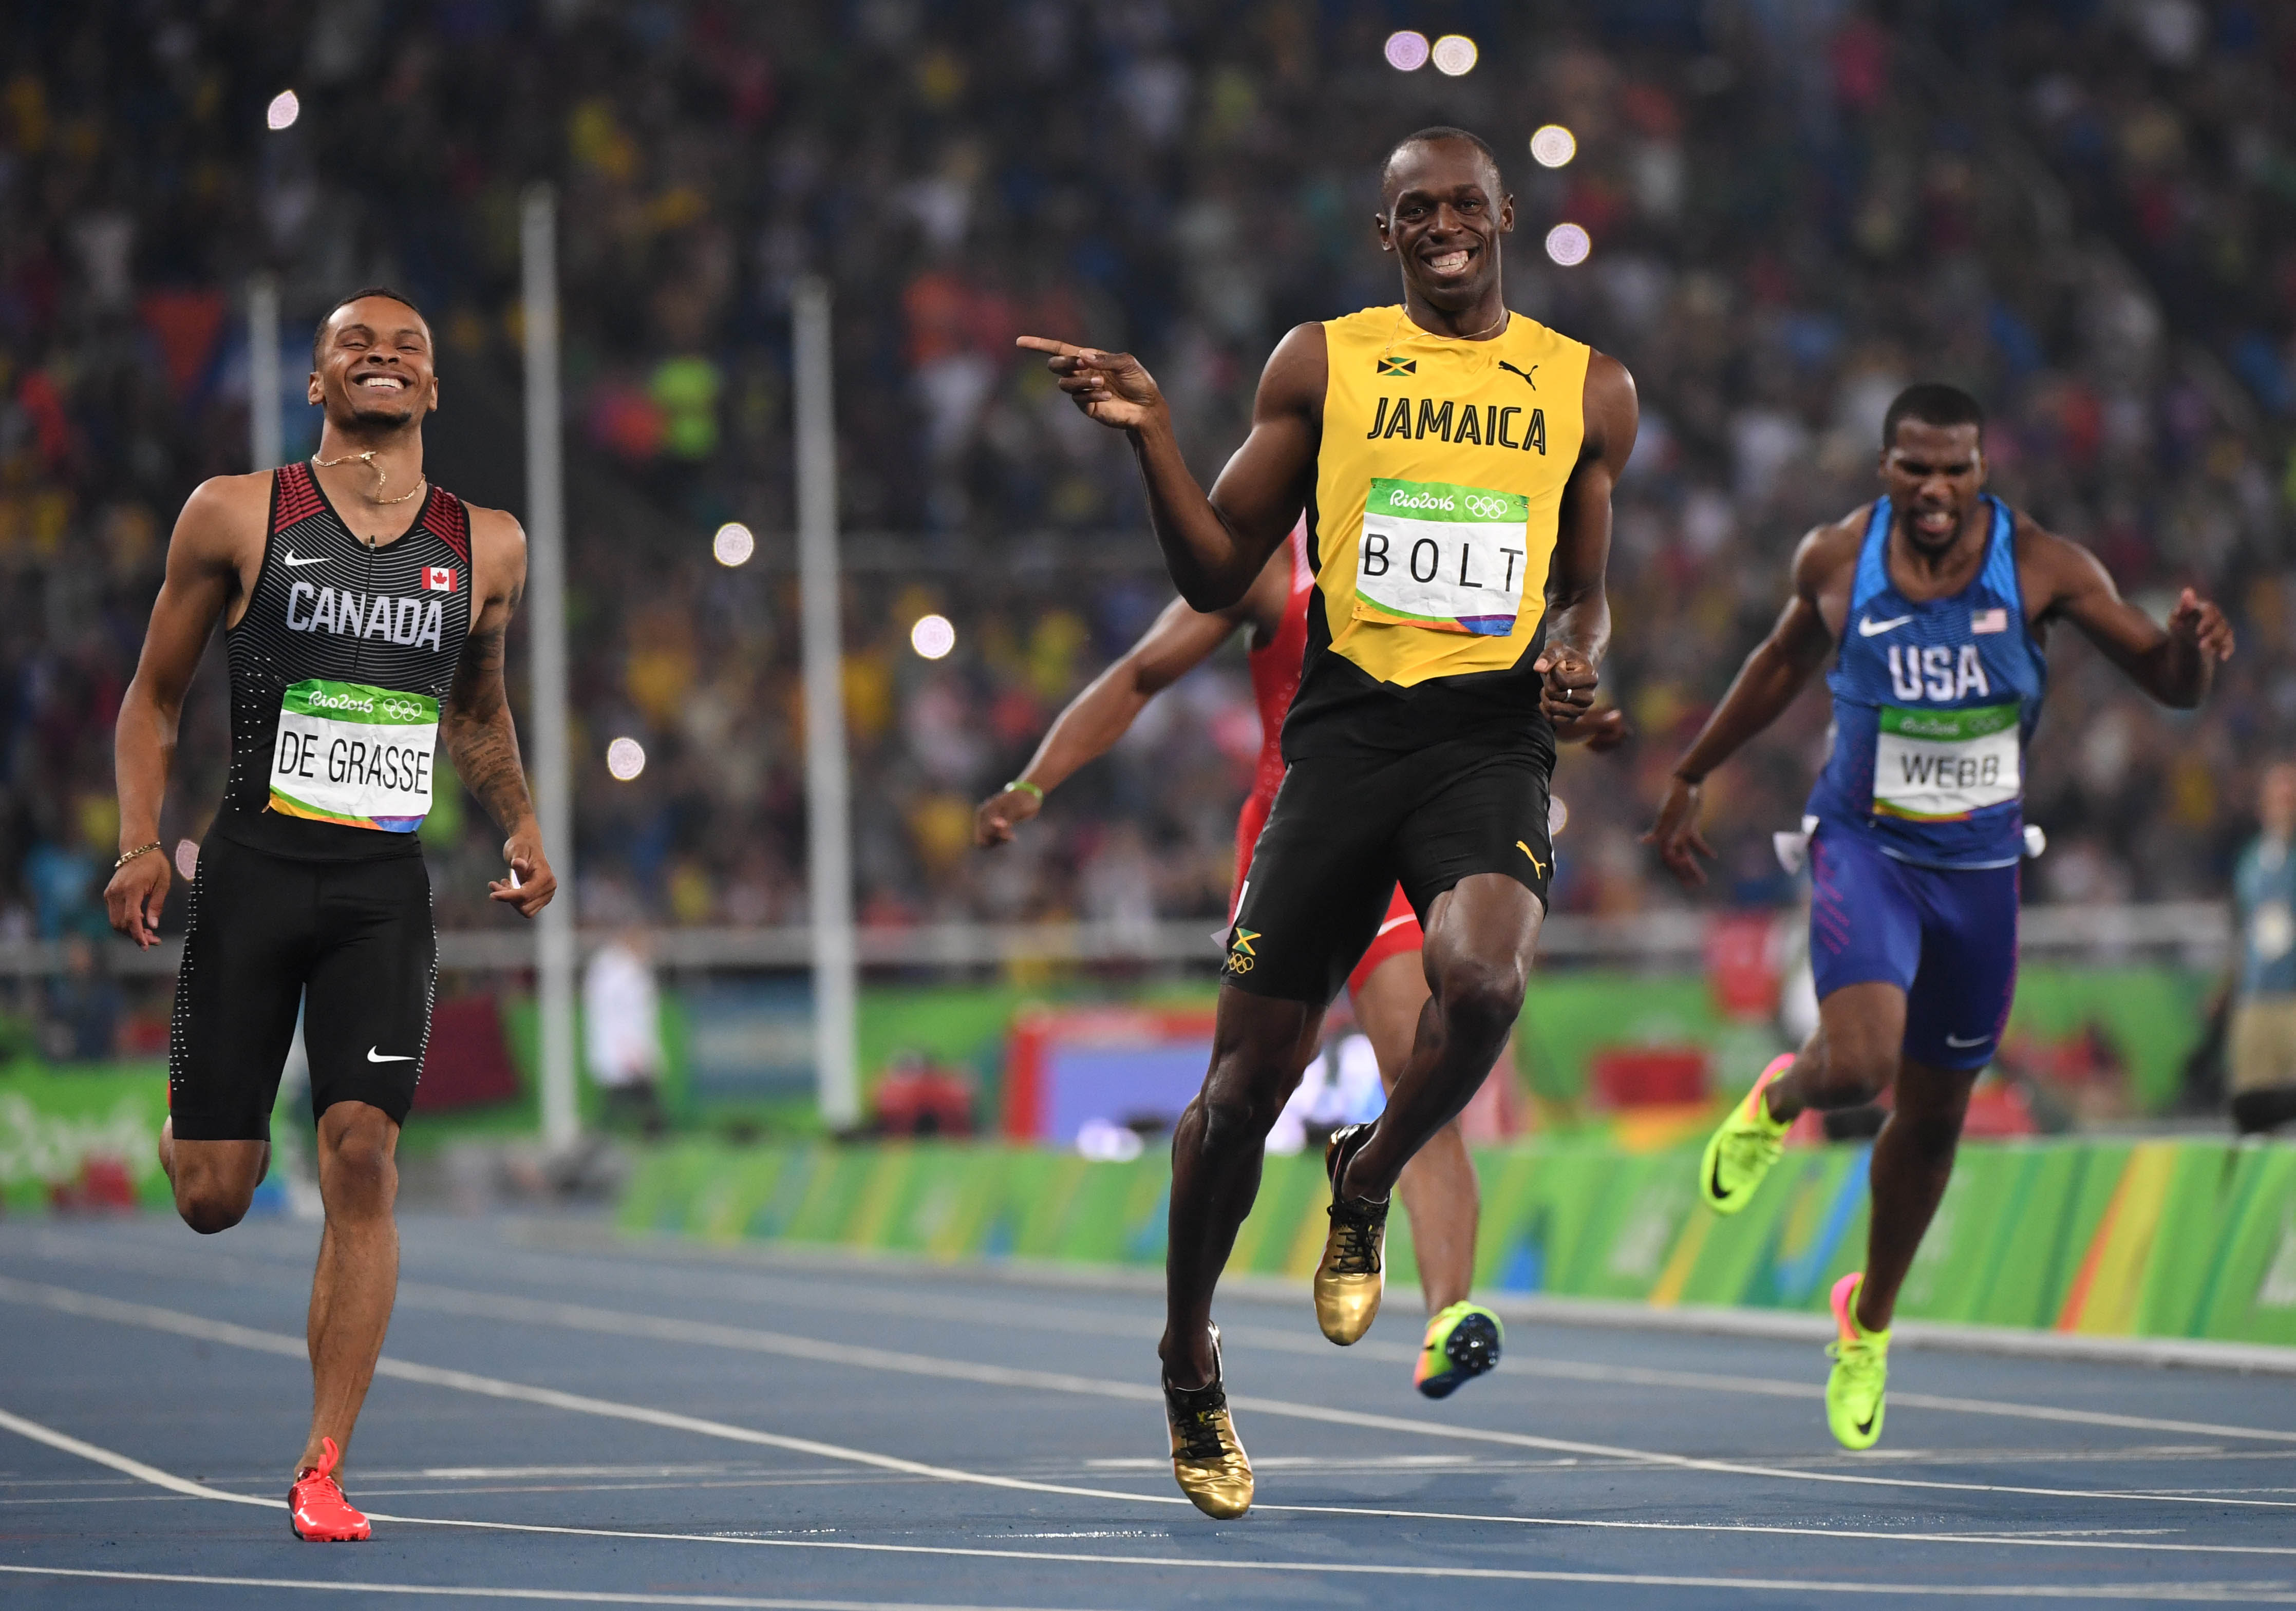 Tonight is the last individual Olympic race for Usain Bolt.